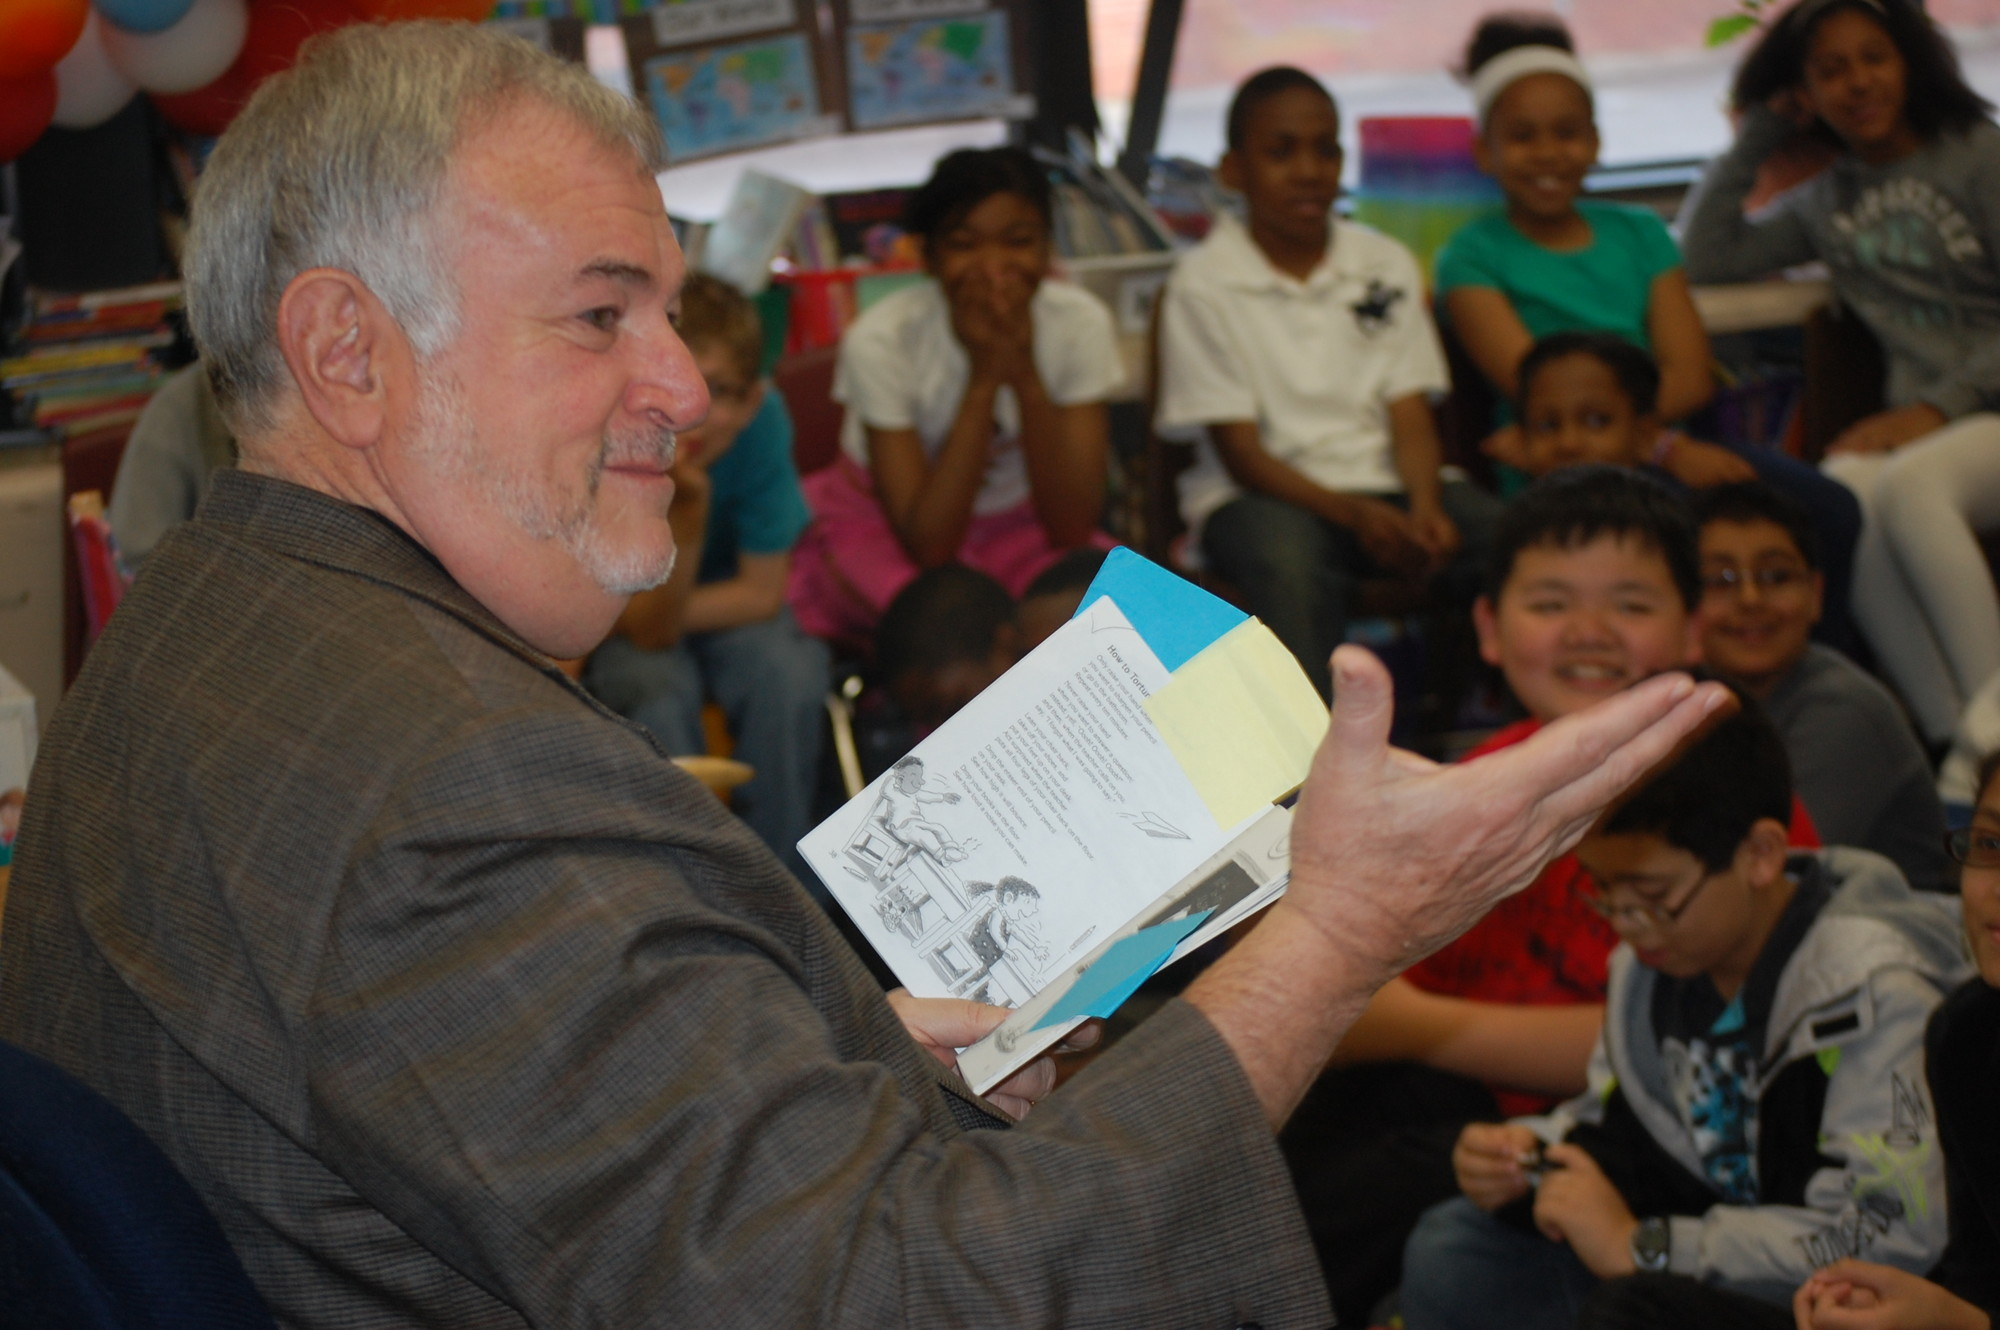 Roger Tilles, Long Island�s representative on the New York State Board of Regents, read poems to a fourth-grade class at Howell Road School on May 8.